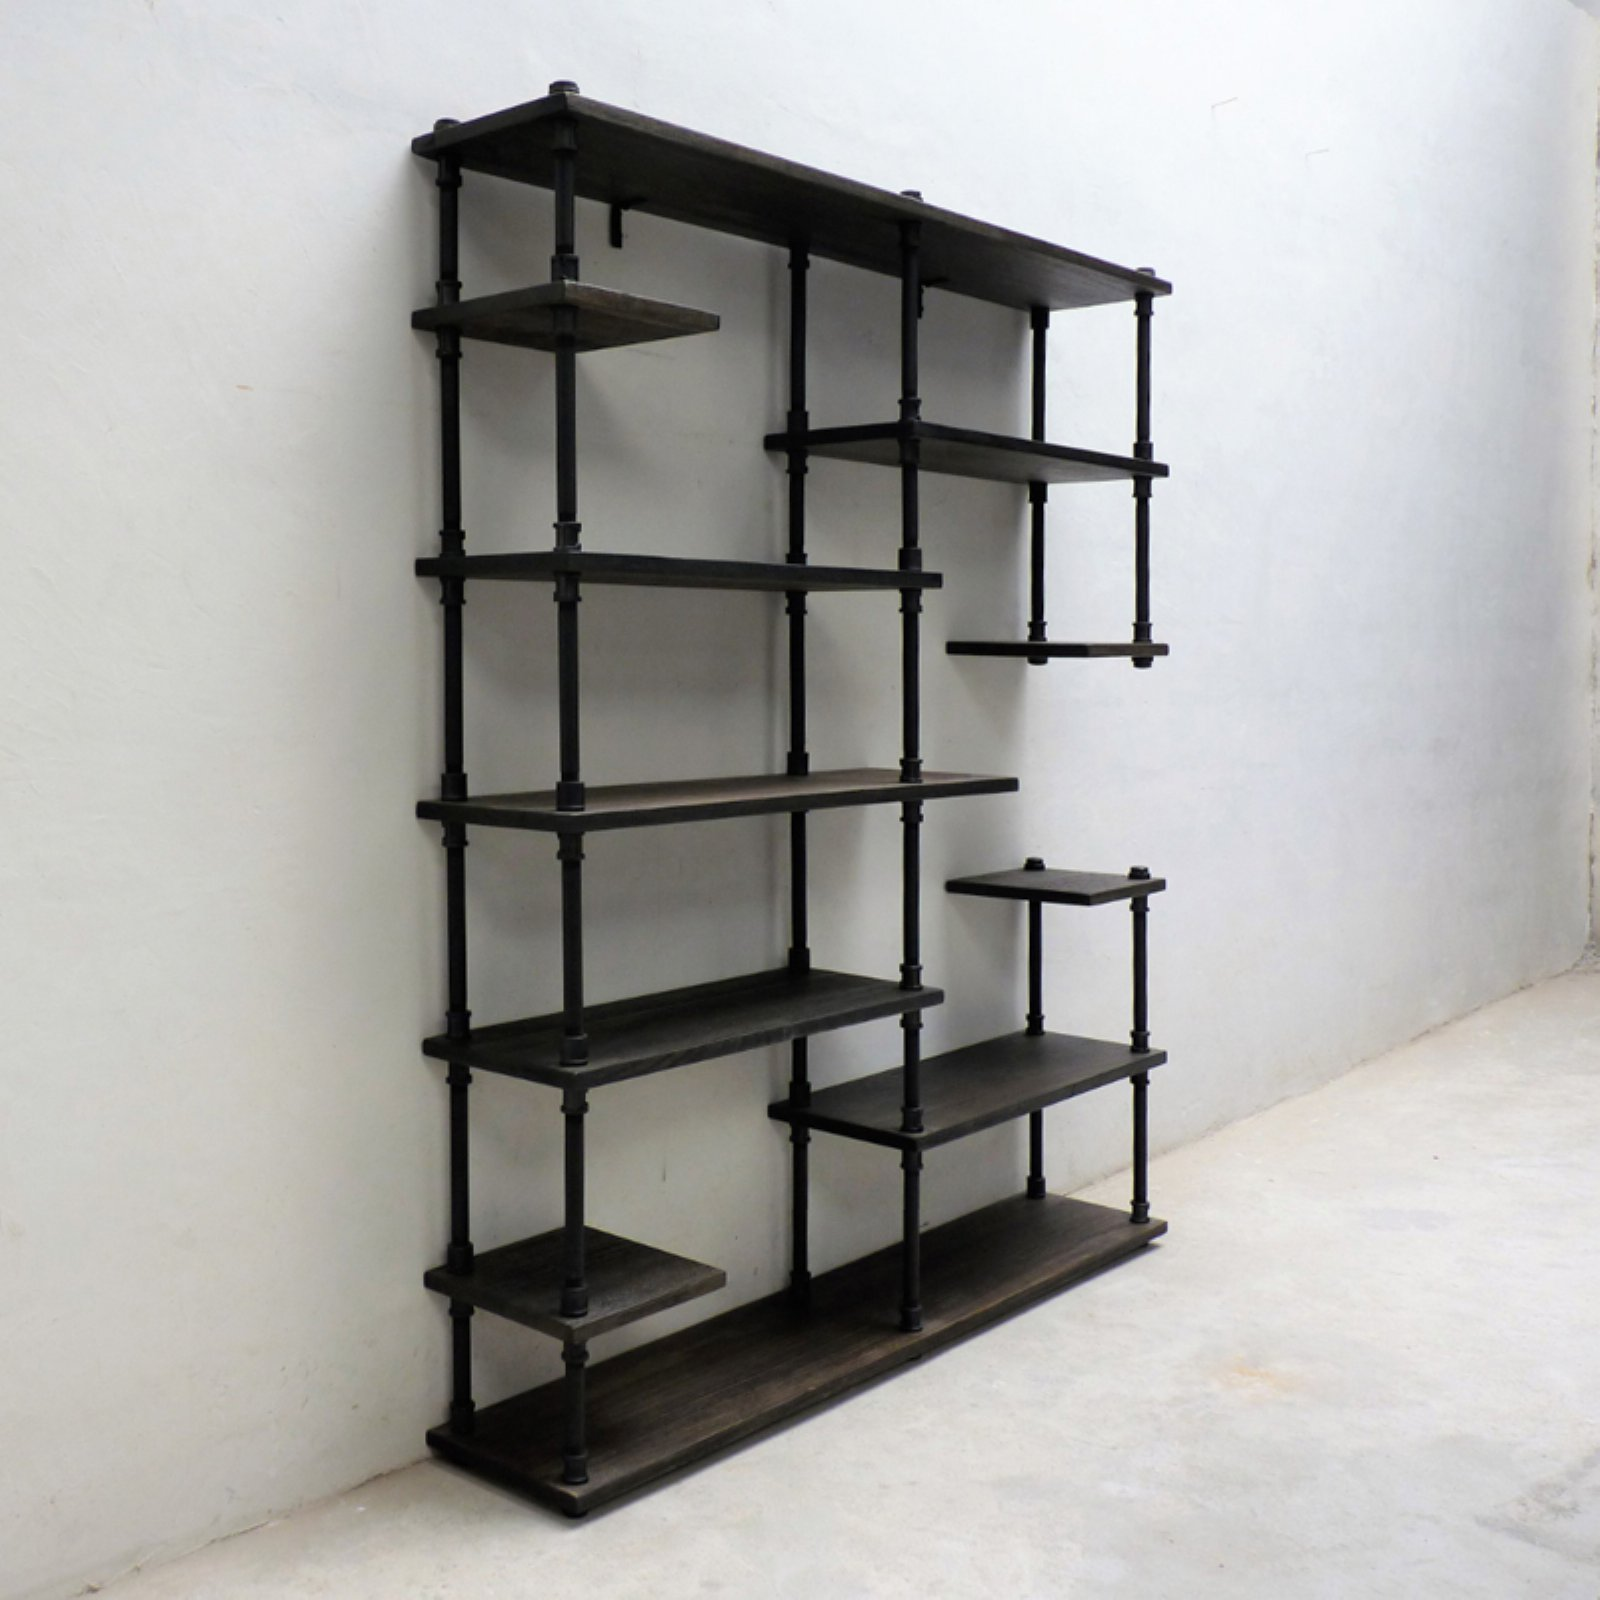 Furniture Pipeline Nashville Industrial Mid-Century Etagere Bookcase by Furniture Pipeline